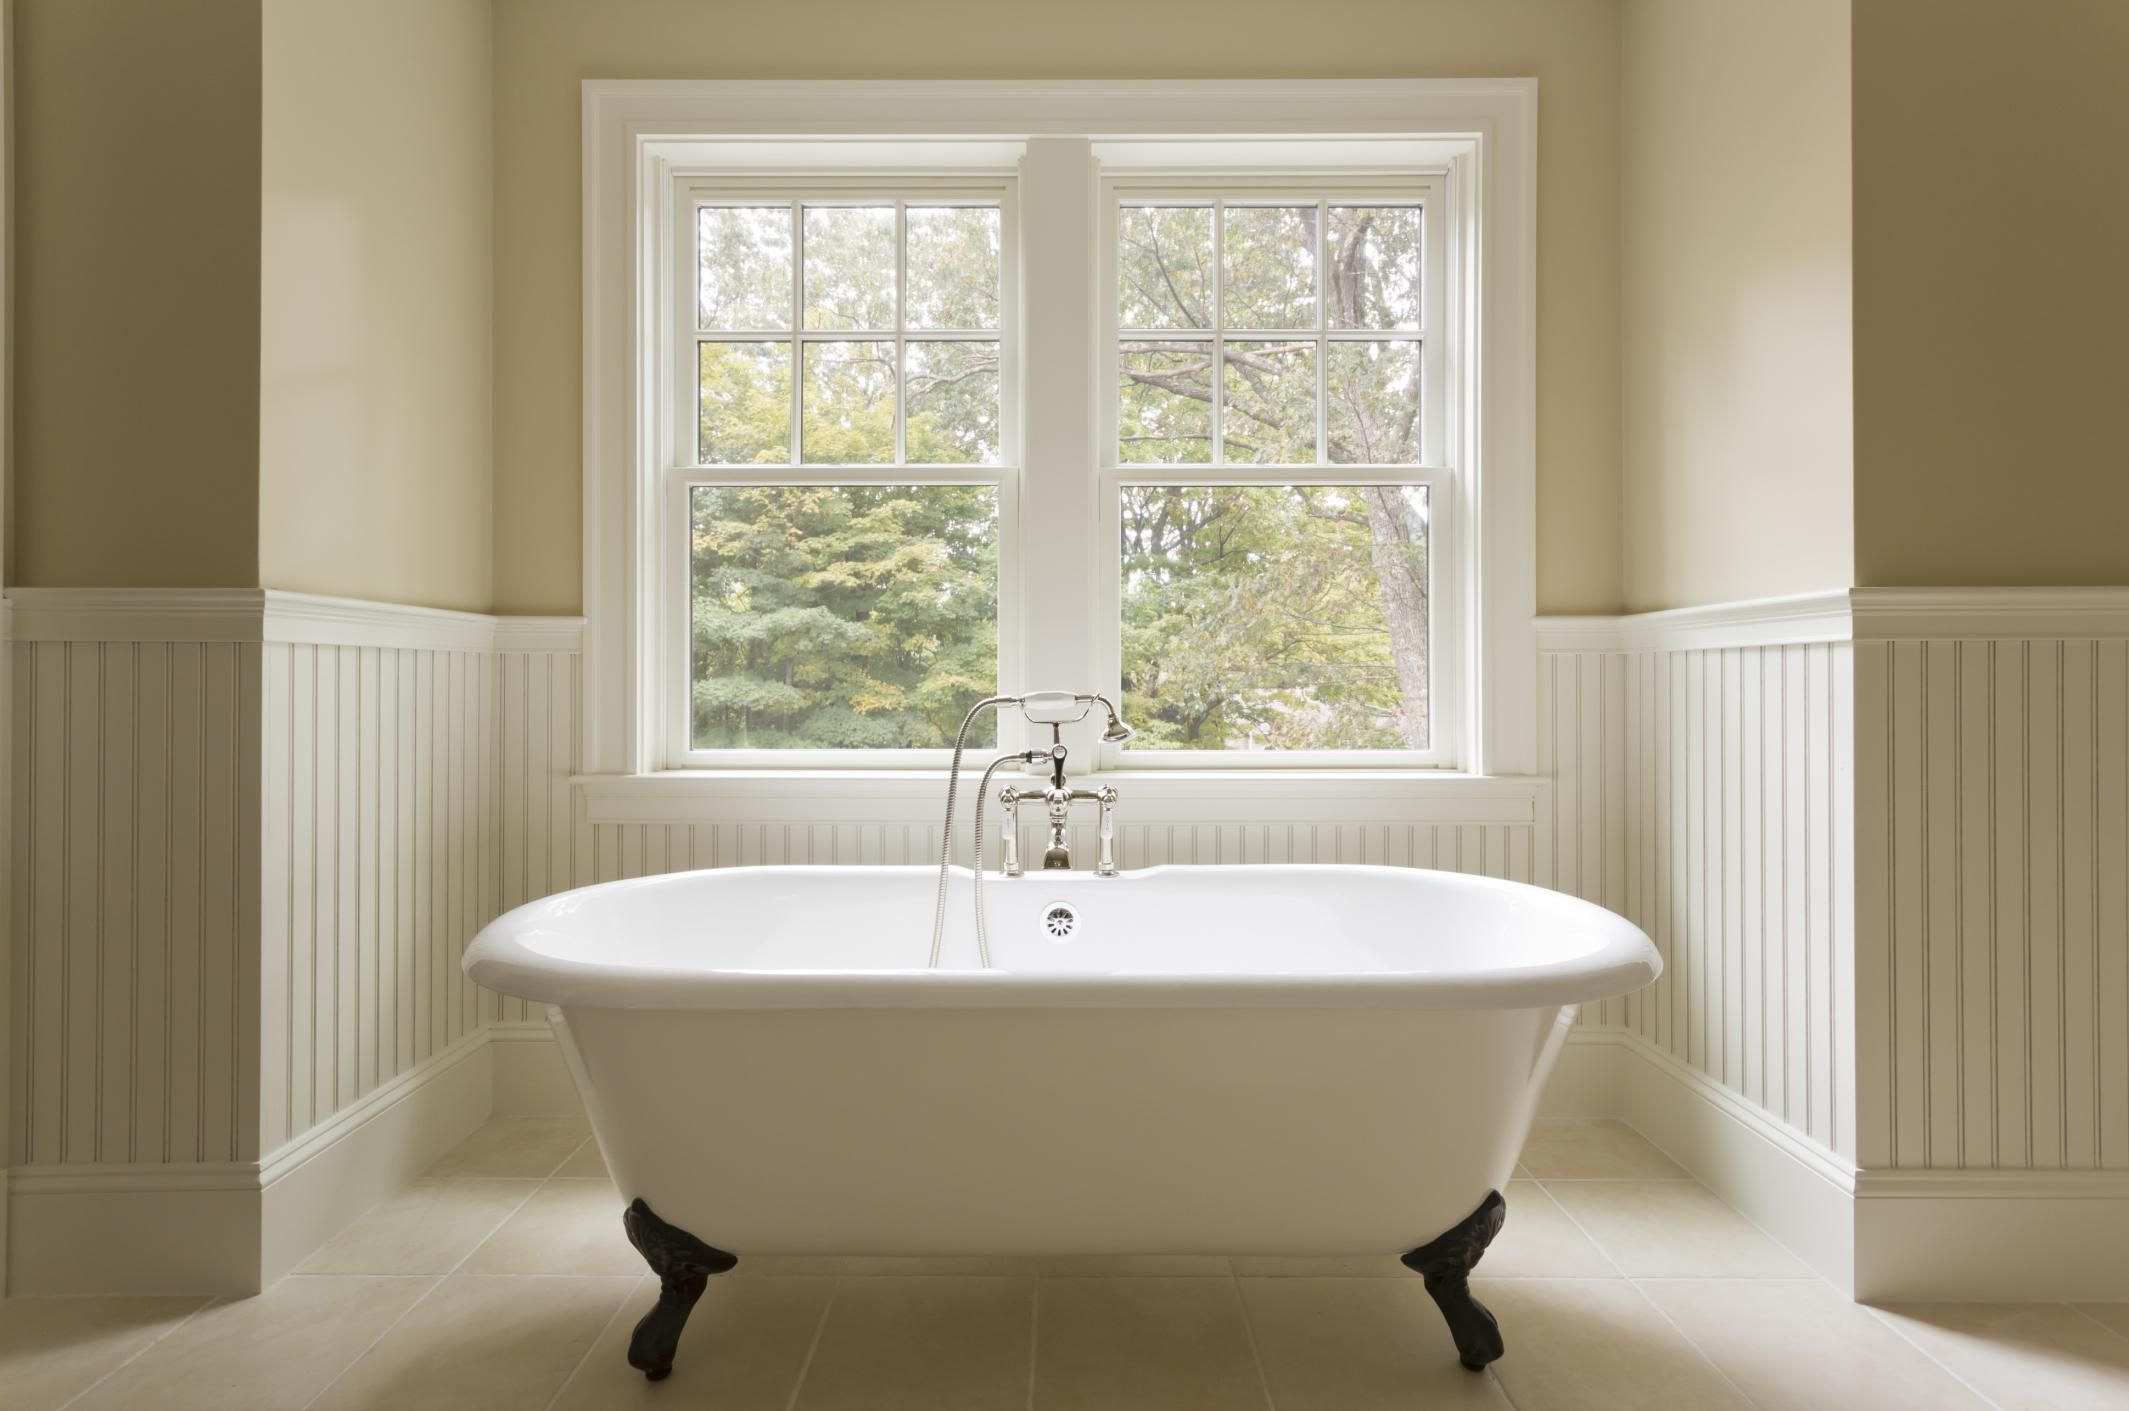 it tub bathroom appealing tile refinishing to bathtub reglaze and in time traditional cost reglazing is